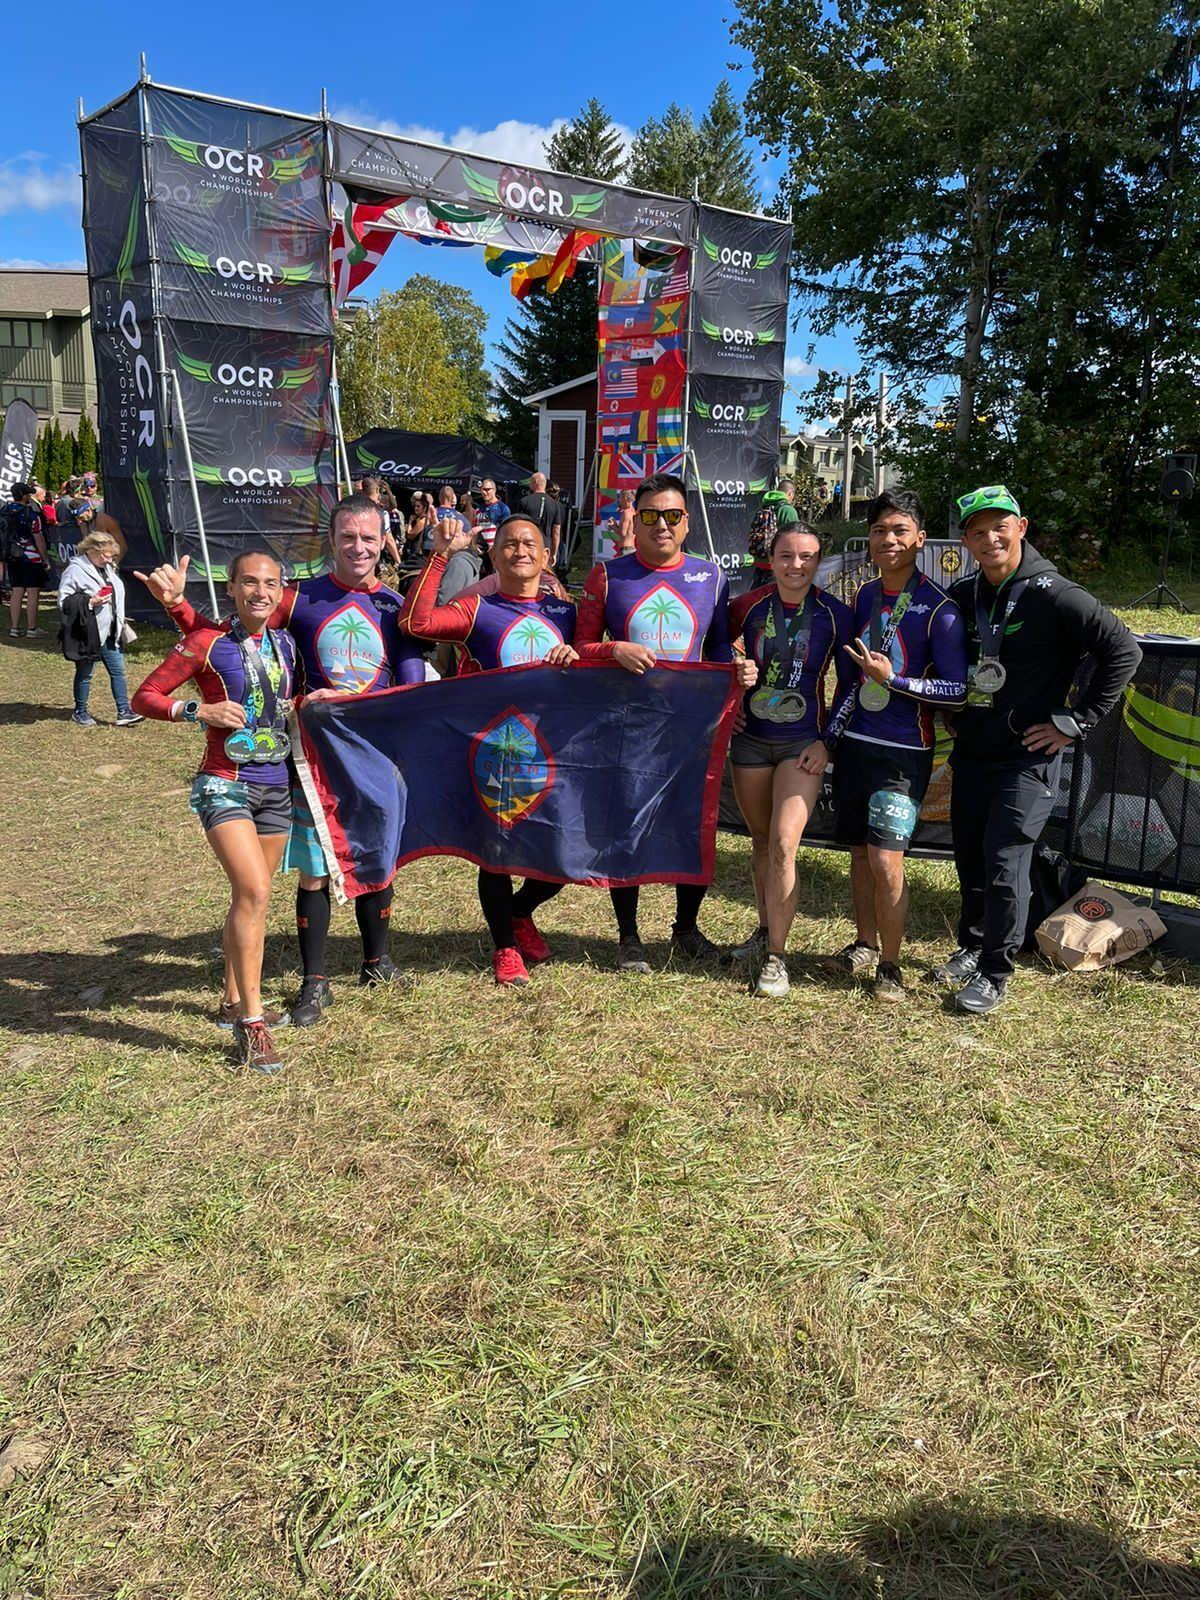 Quitugua and Sardea thriving in world of OCR